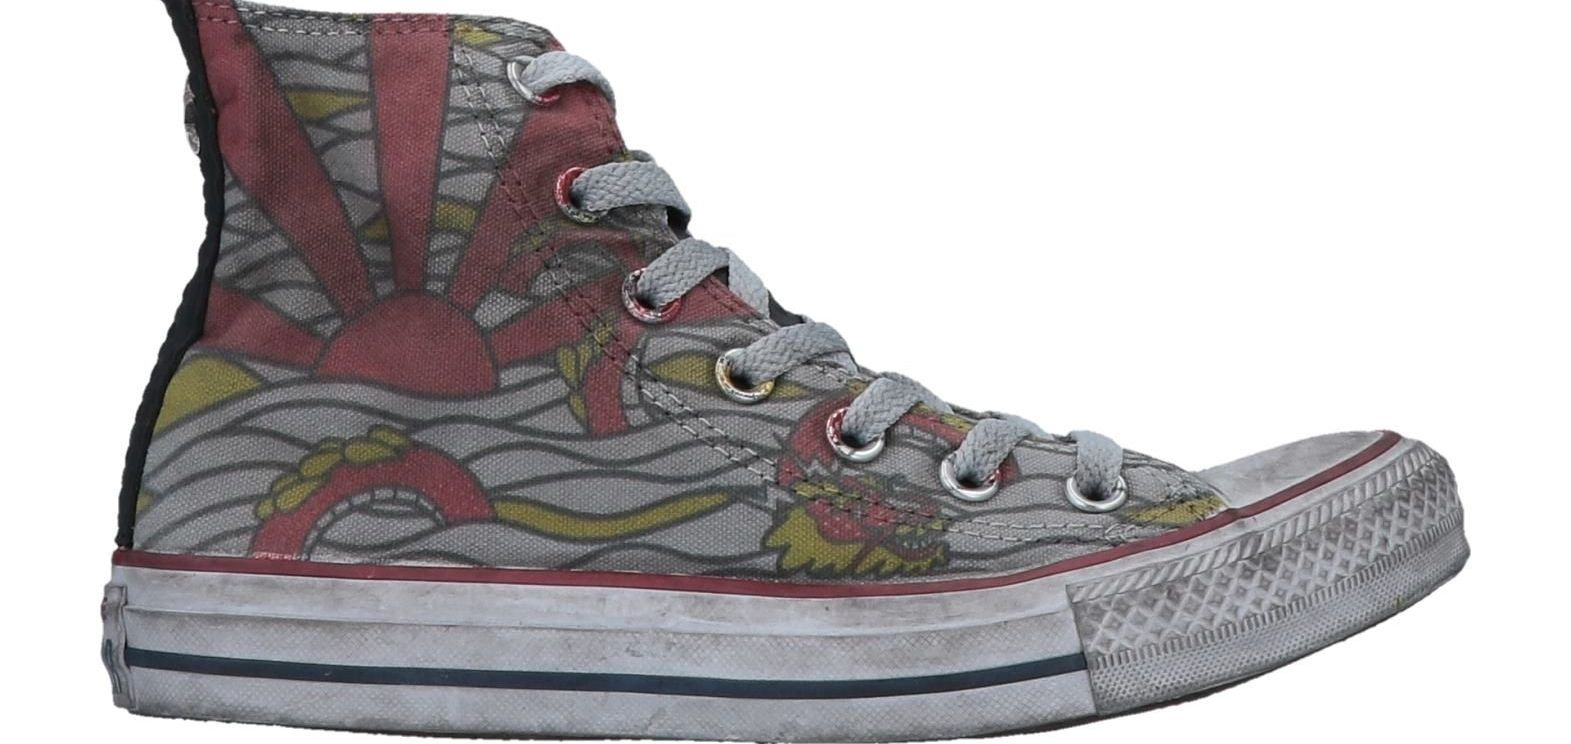 CONVERSE LIMITED EDITION ΠΑΠΟΥΤΣΙΑ Χαμηλά sneakers